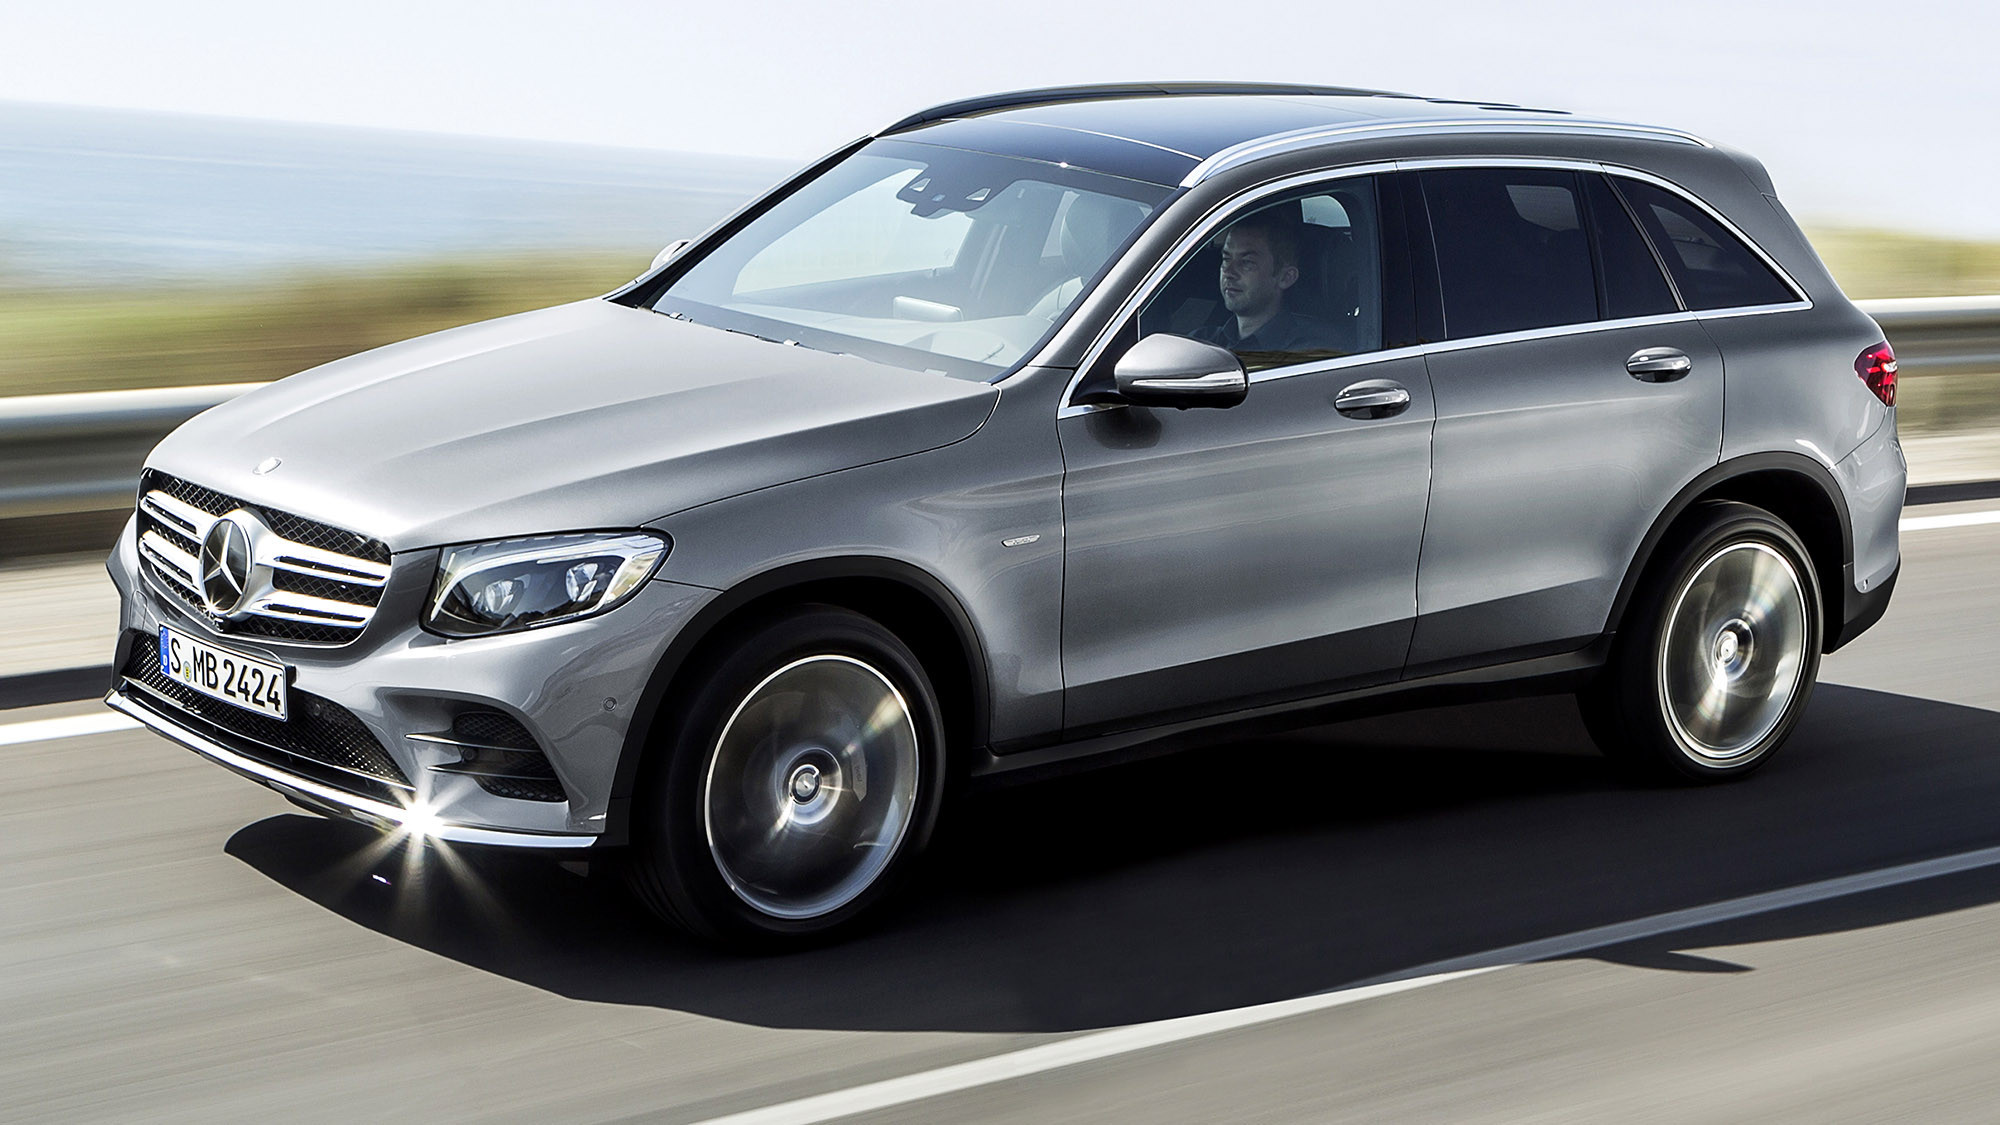 mercedes debuts new glc luxury suv la times. Black Bedroom Furniture Sets. Home Design Ideas